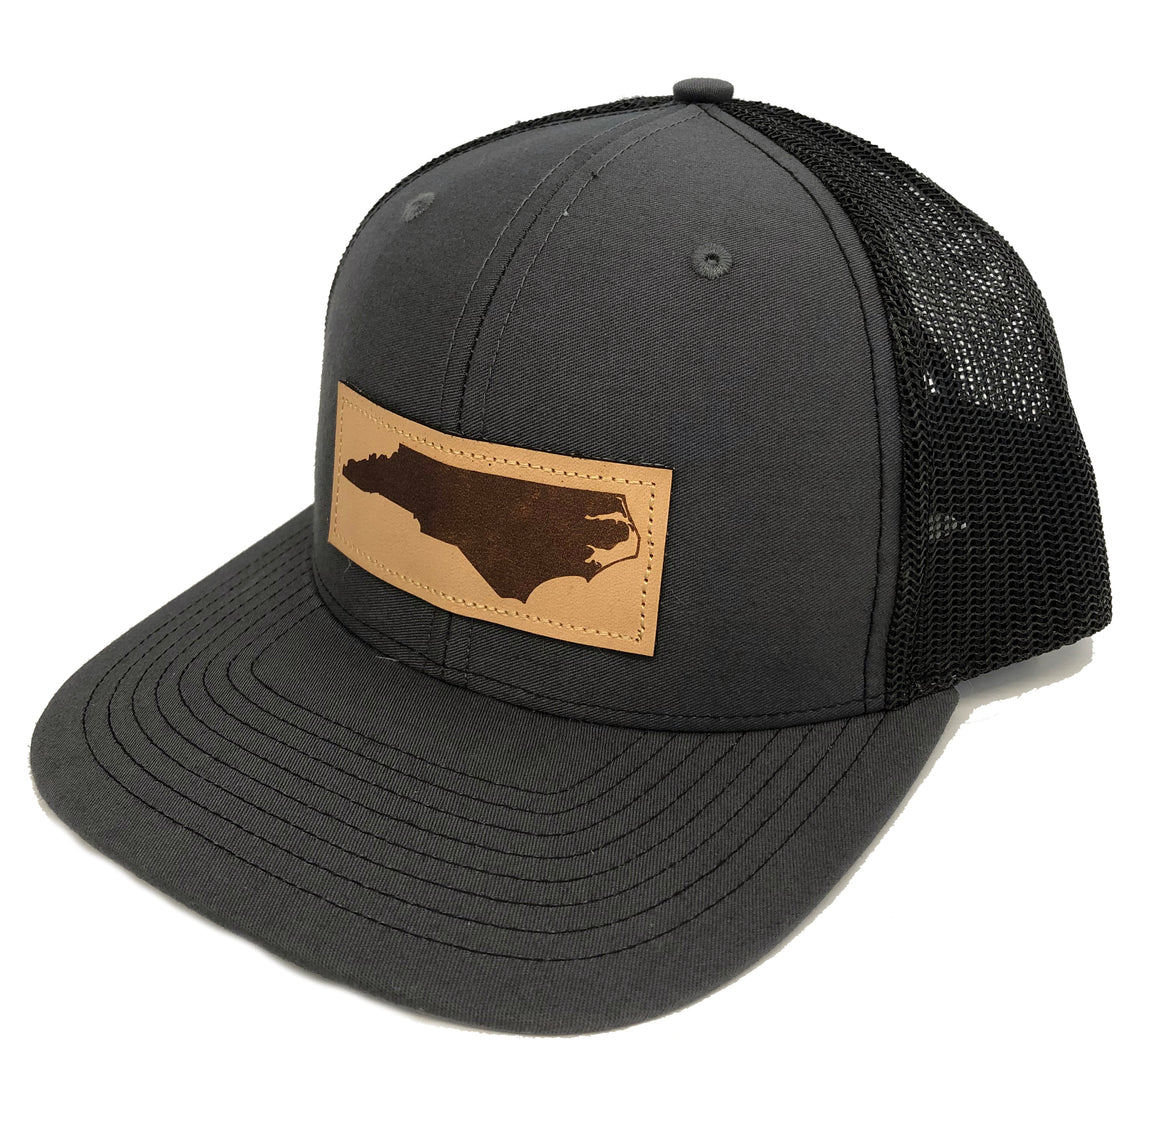 452354b1c2e ... North Carolina Square Leather Patch Hat in Charcoal and Black